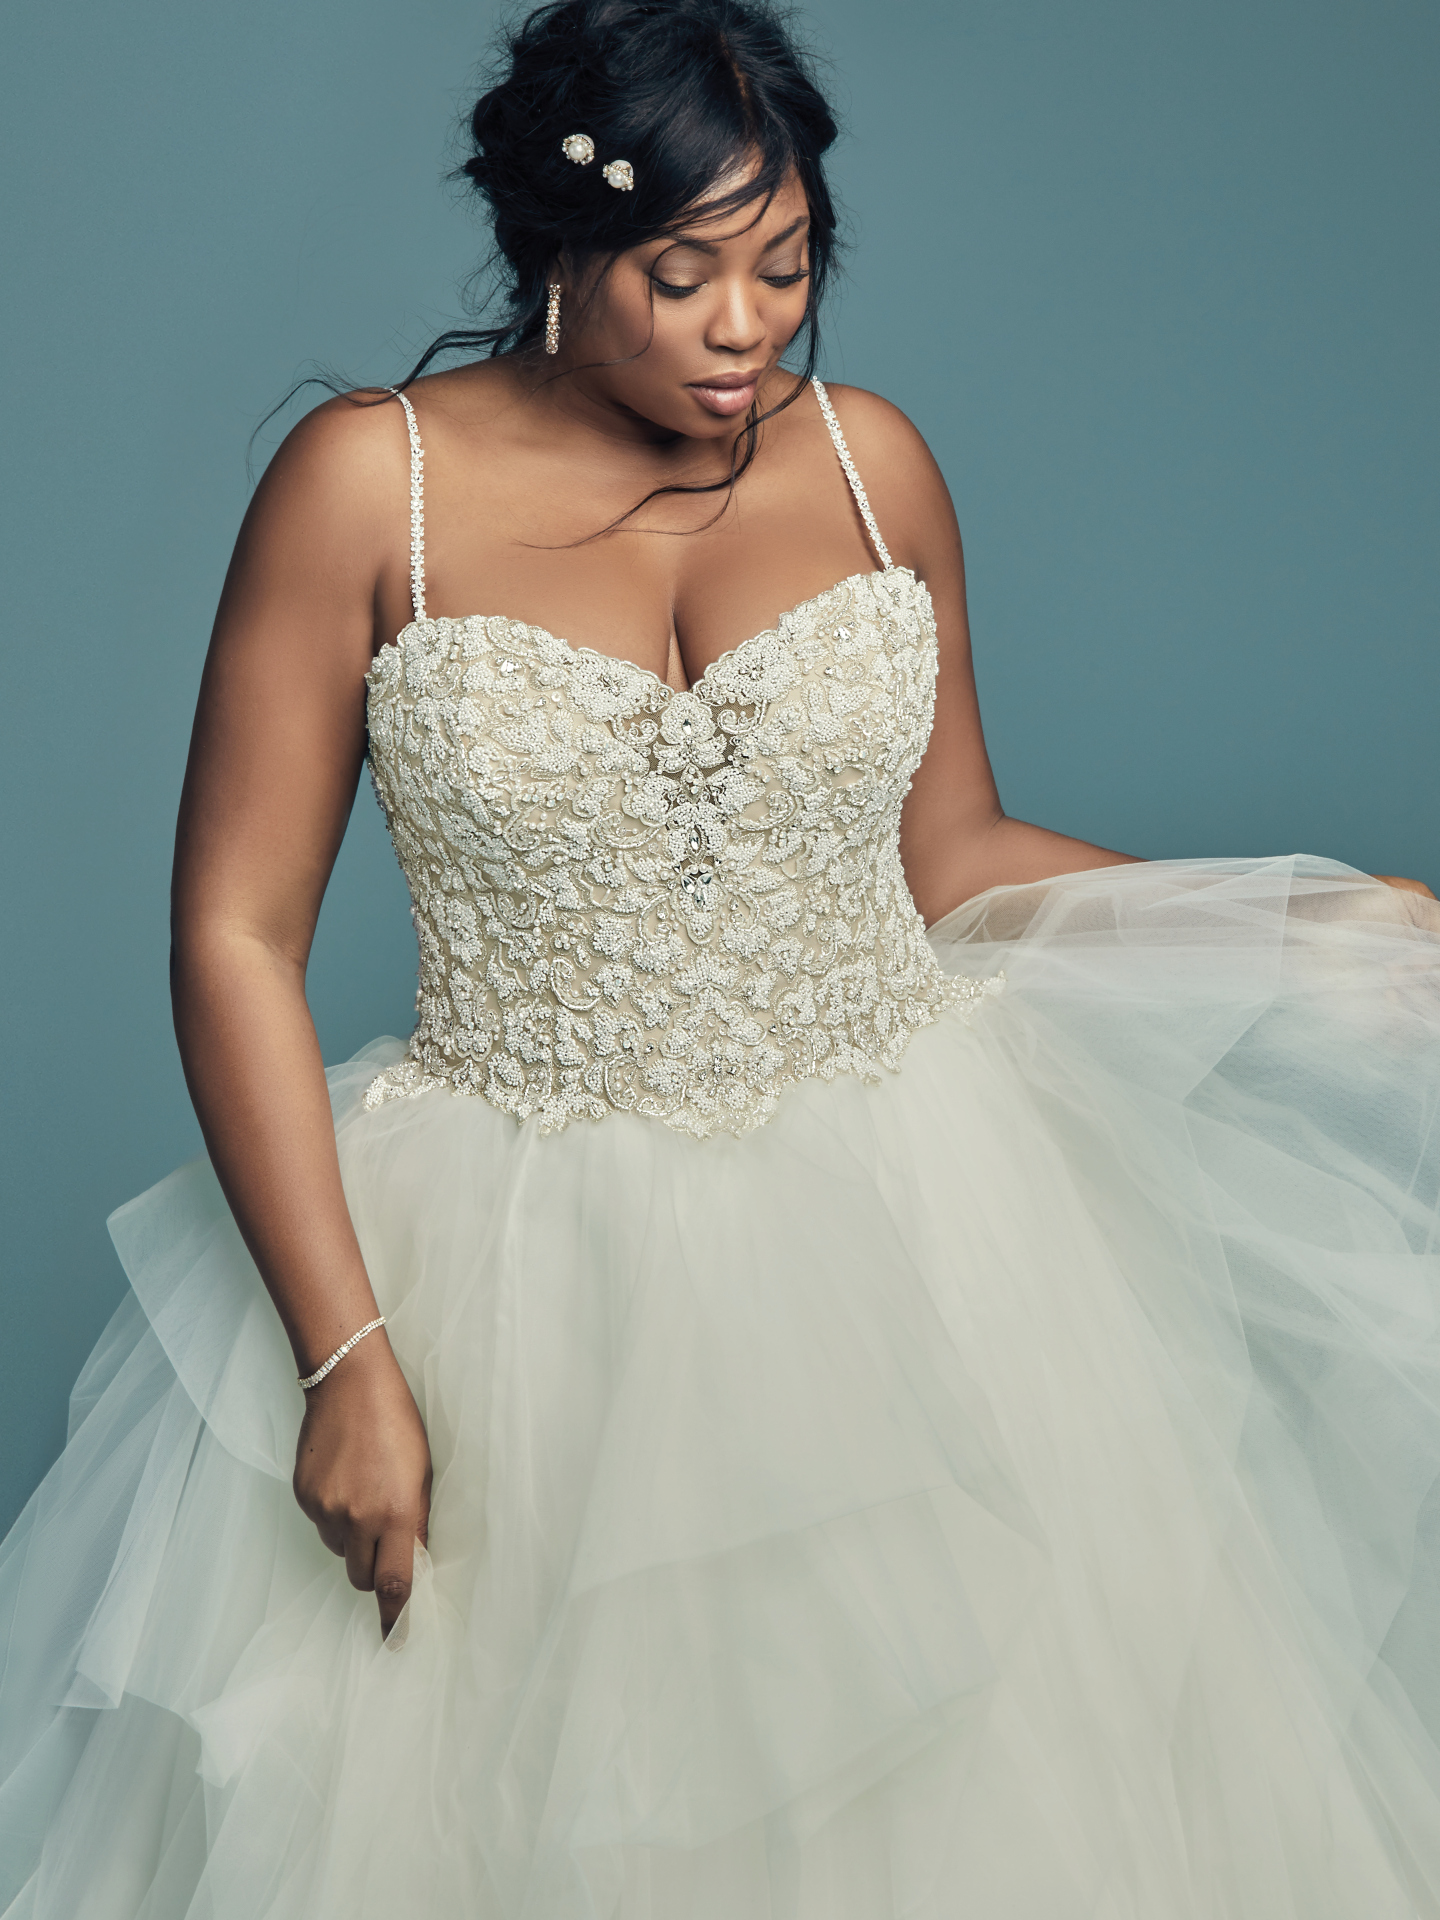 The Ultimate Guide to Wedding Gowns for Curvy Brides from Whitney of CurveGenius - Try the Shauna lynette wedding dress by Maggie Sottero and feel confident as you dance the night away